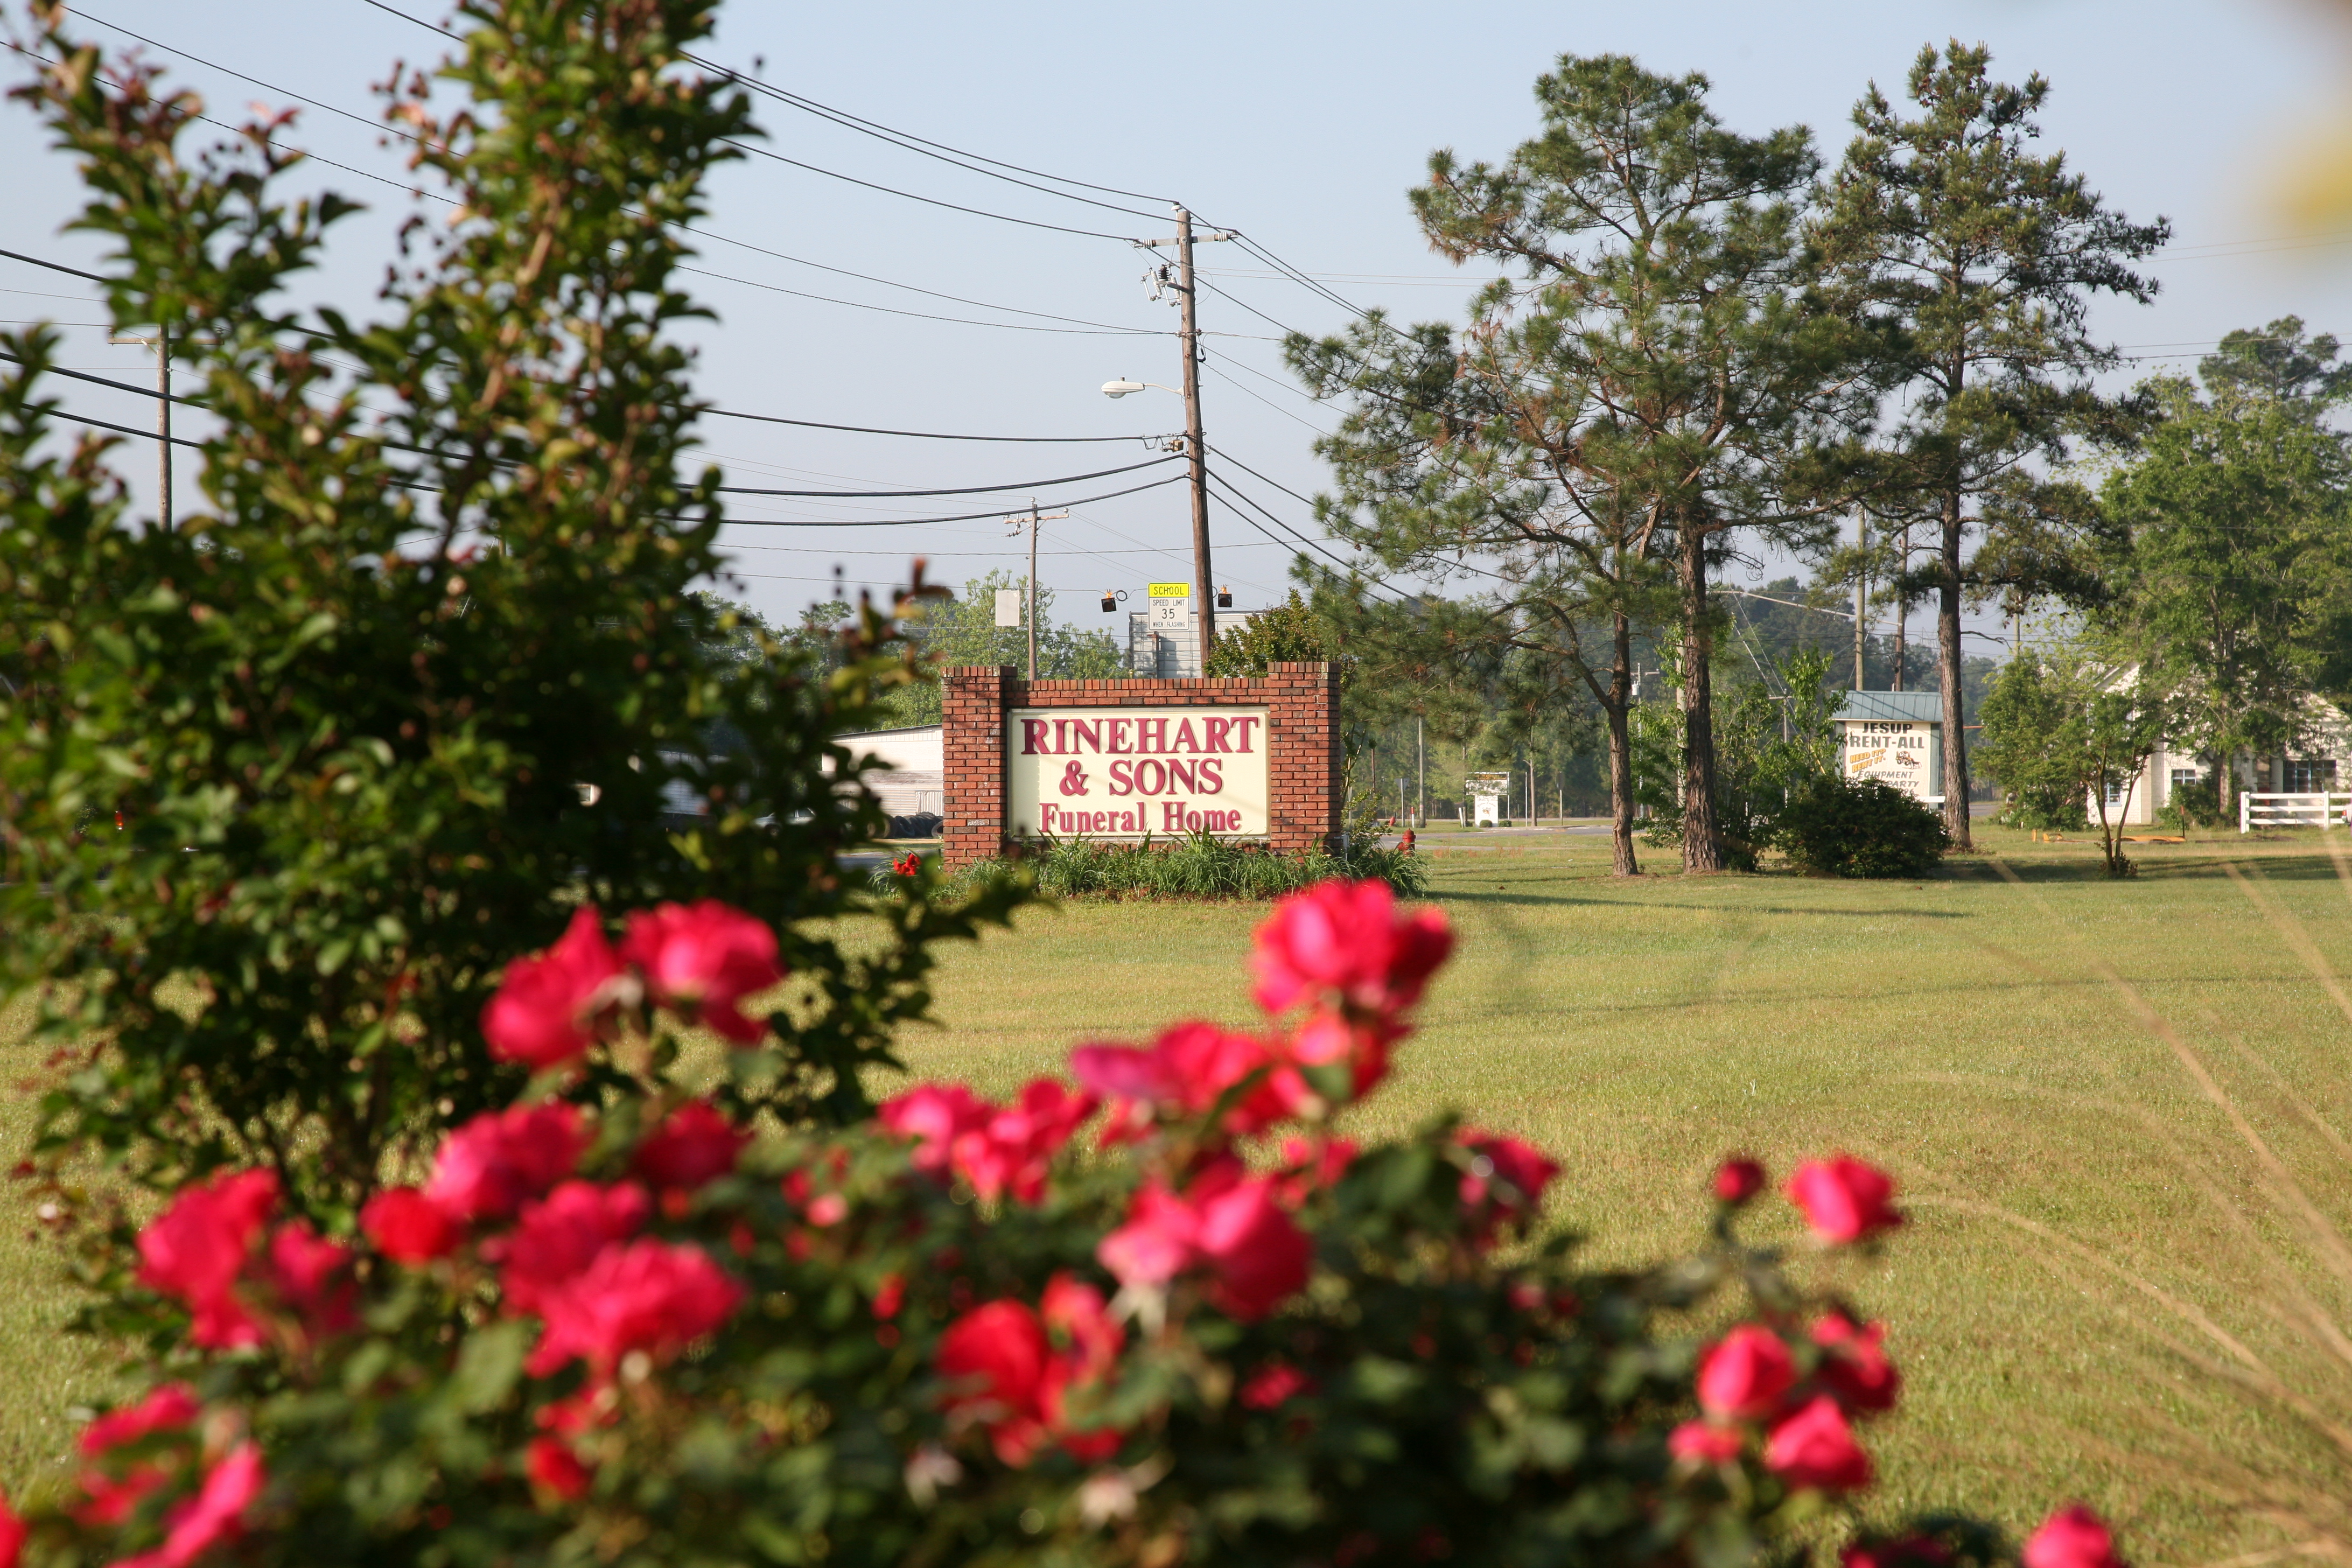 Rinehart And Sons Funeral Home Inc  | Facility | Rinehart And Sons